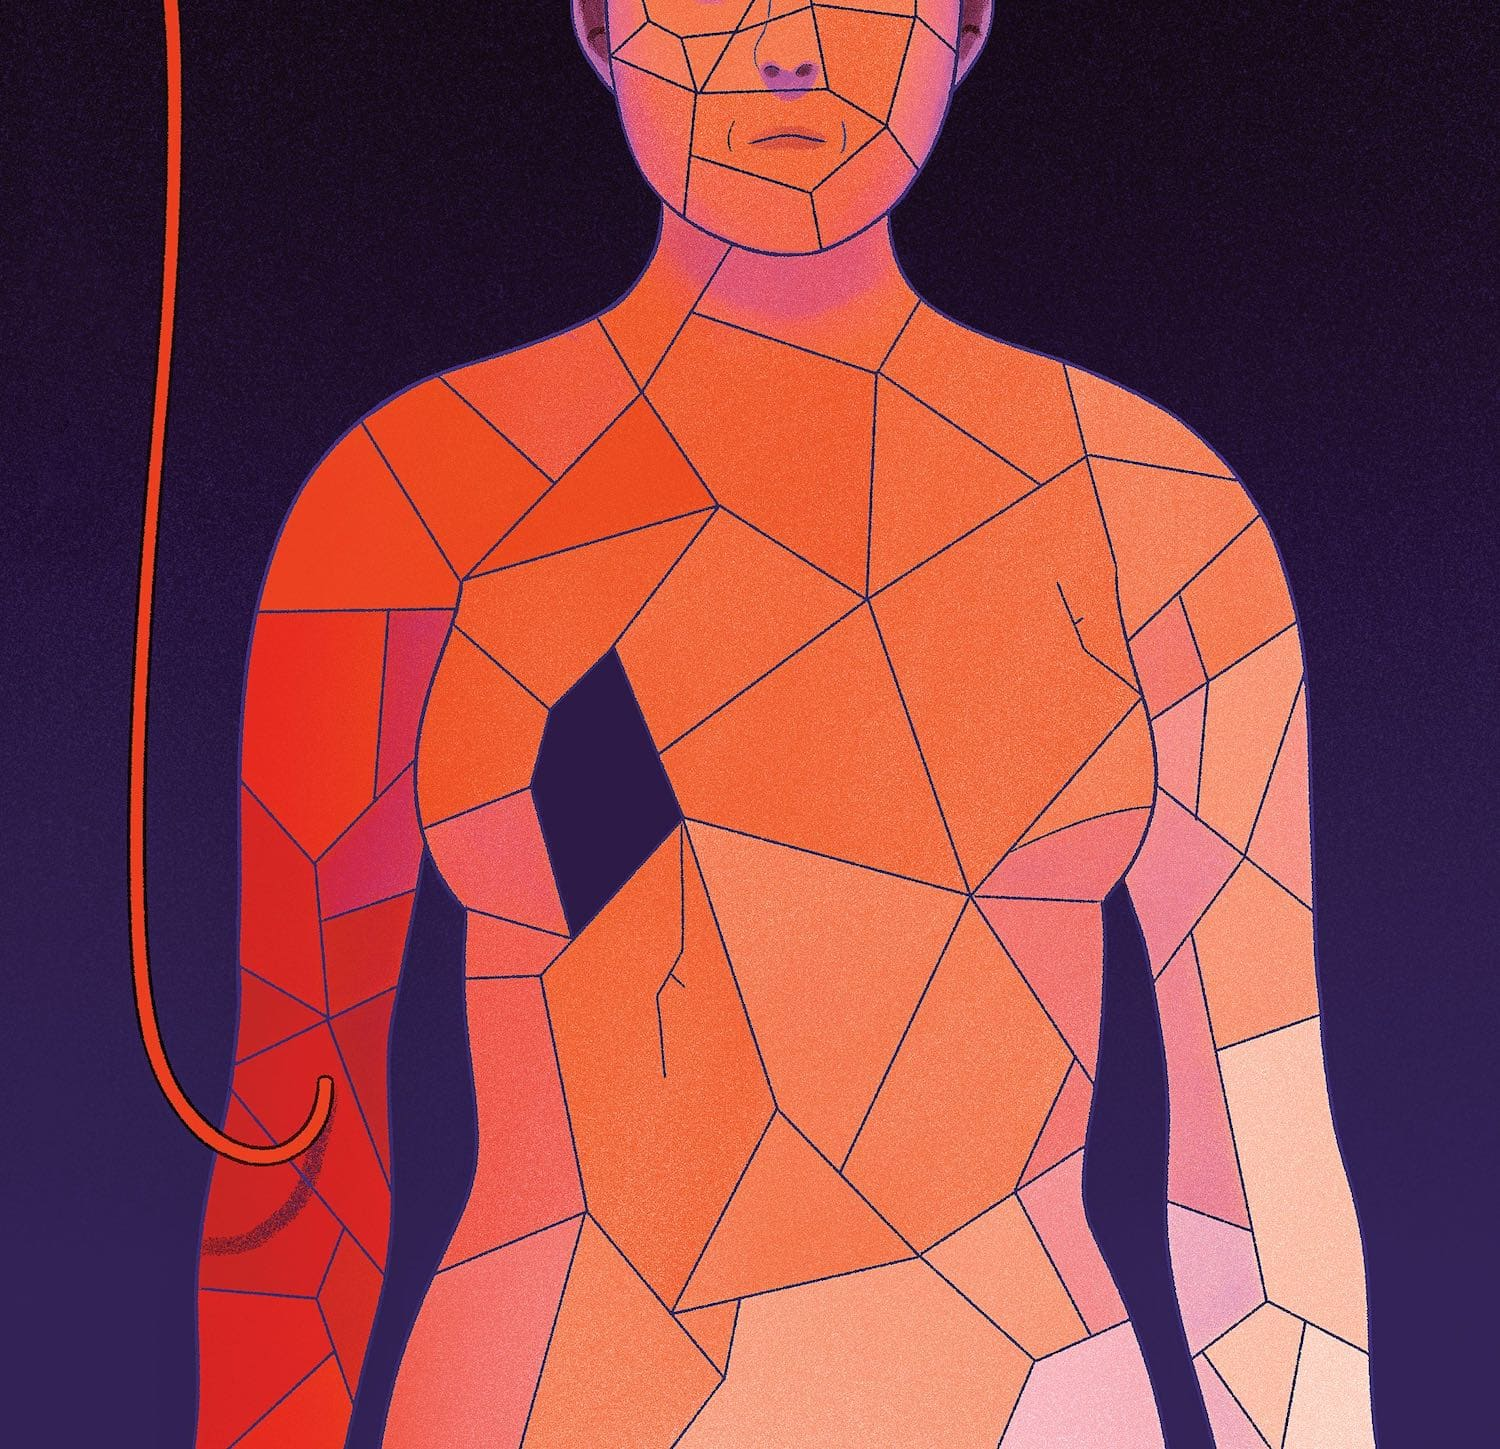 From the New Yorker: What Cancer Takes Away